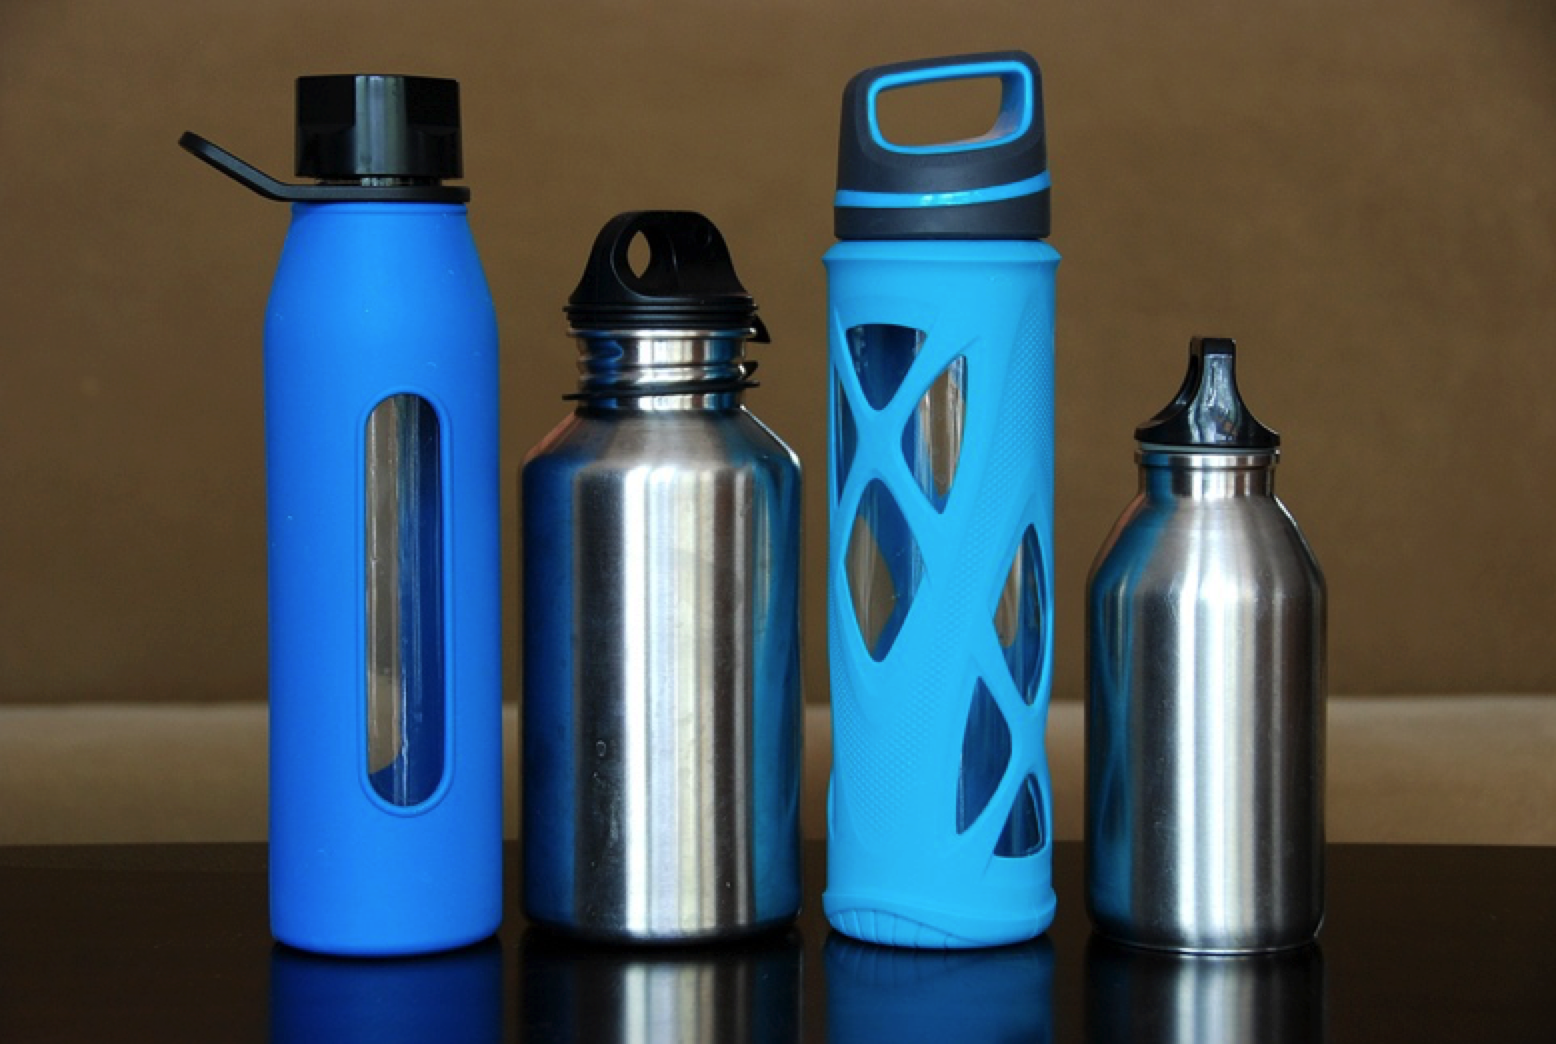 Water bottles - water is the key.